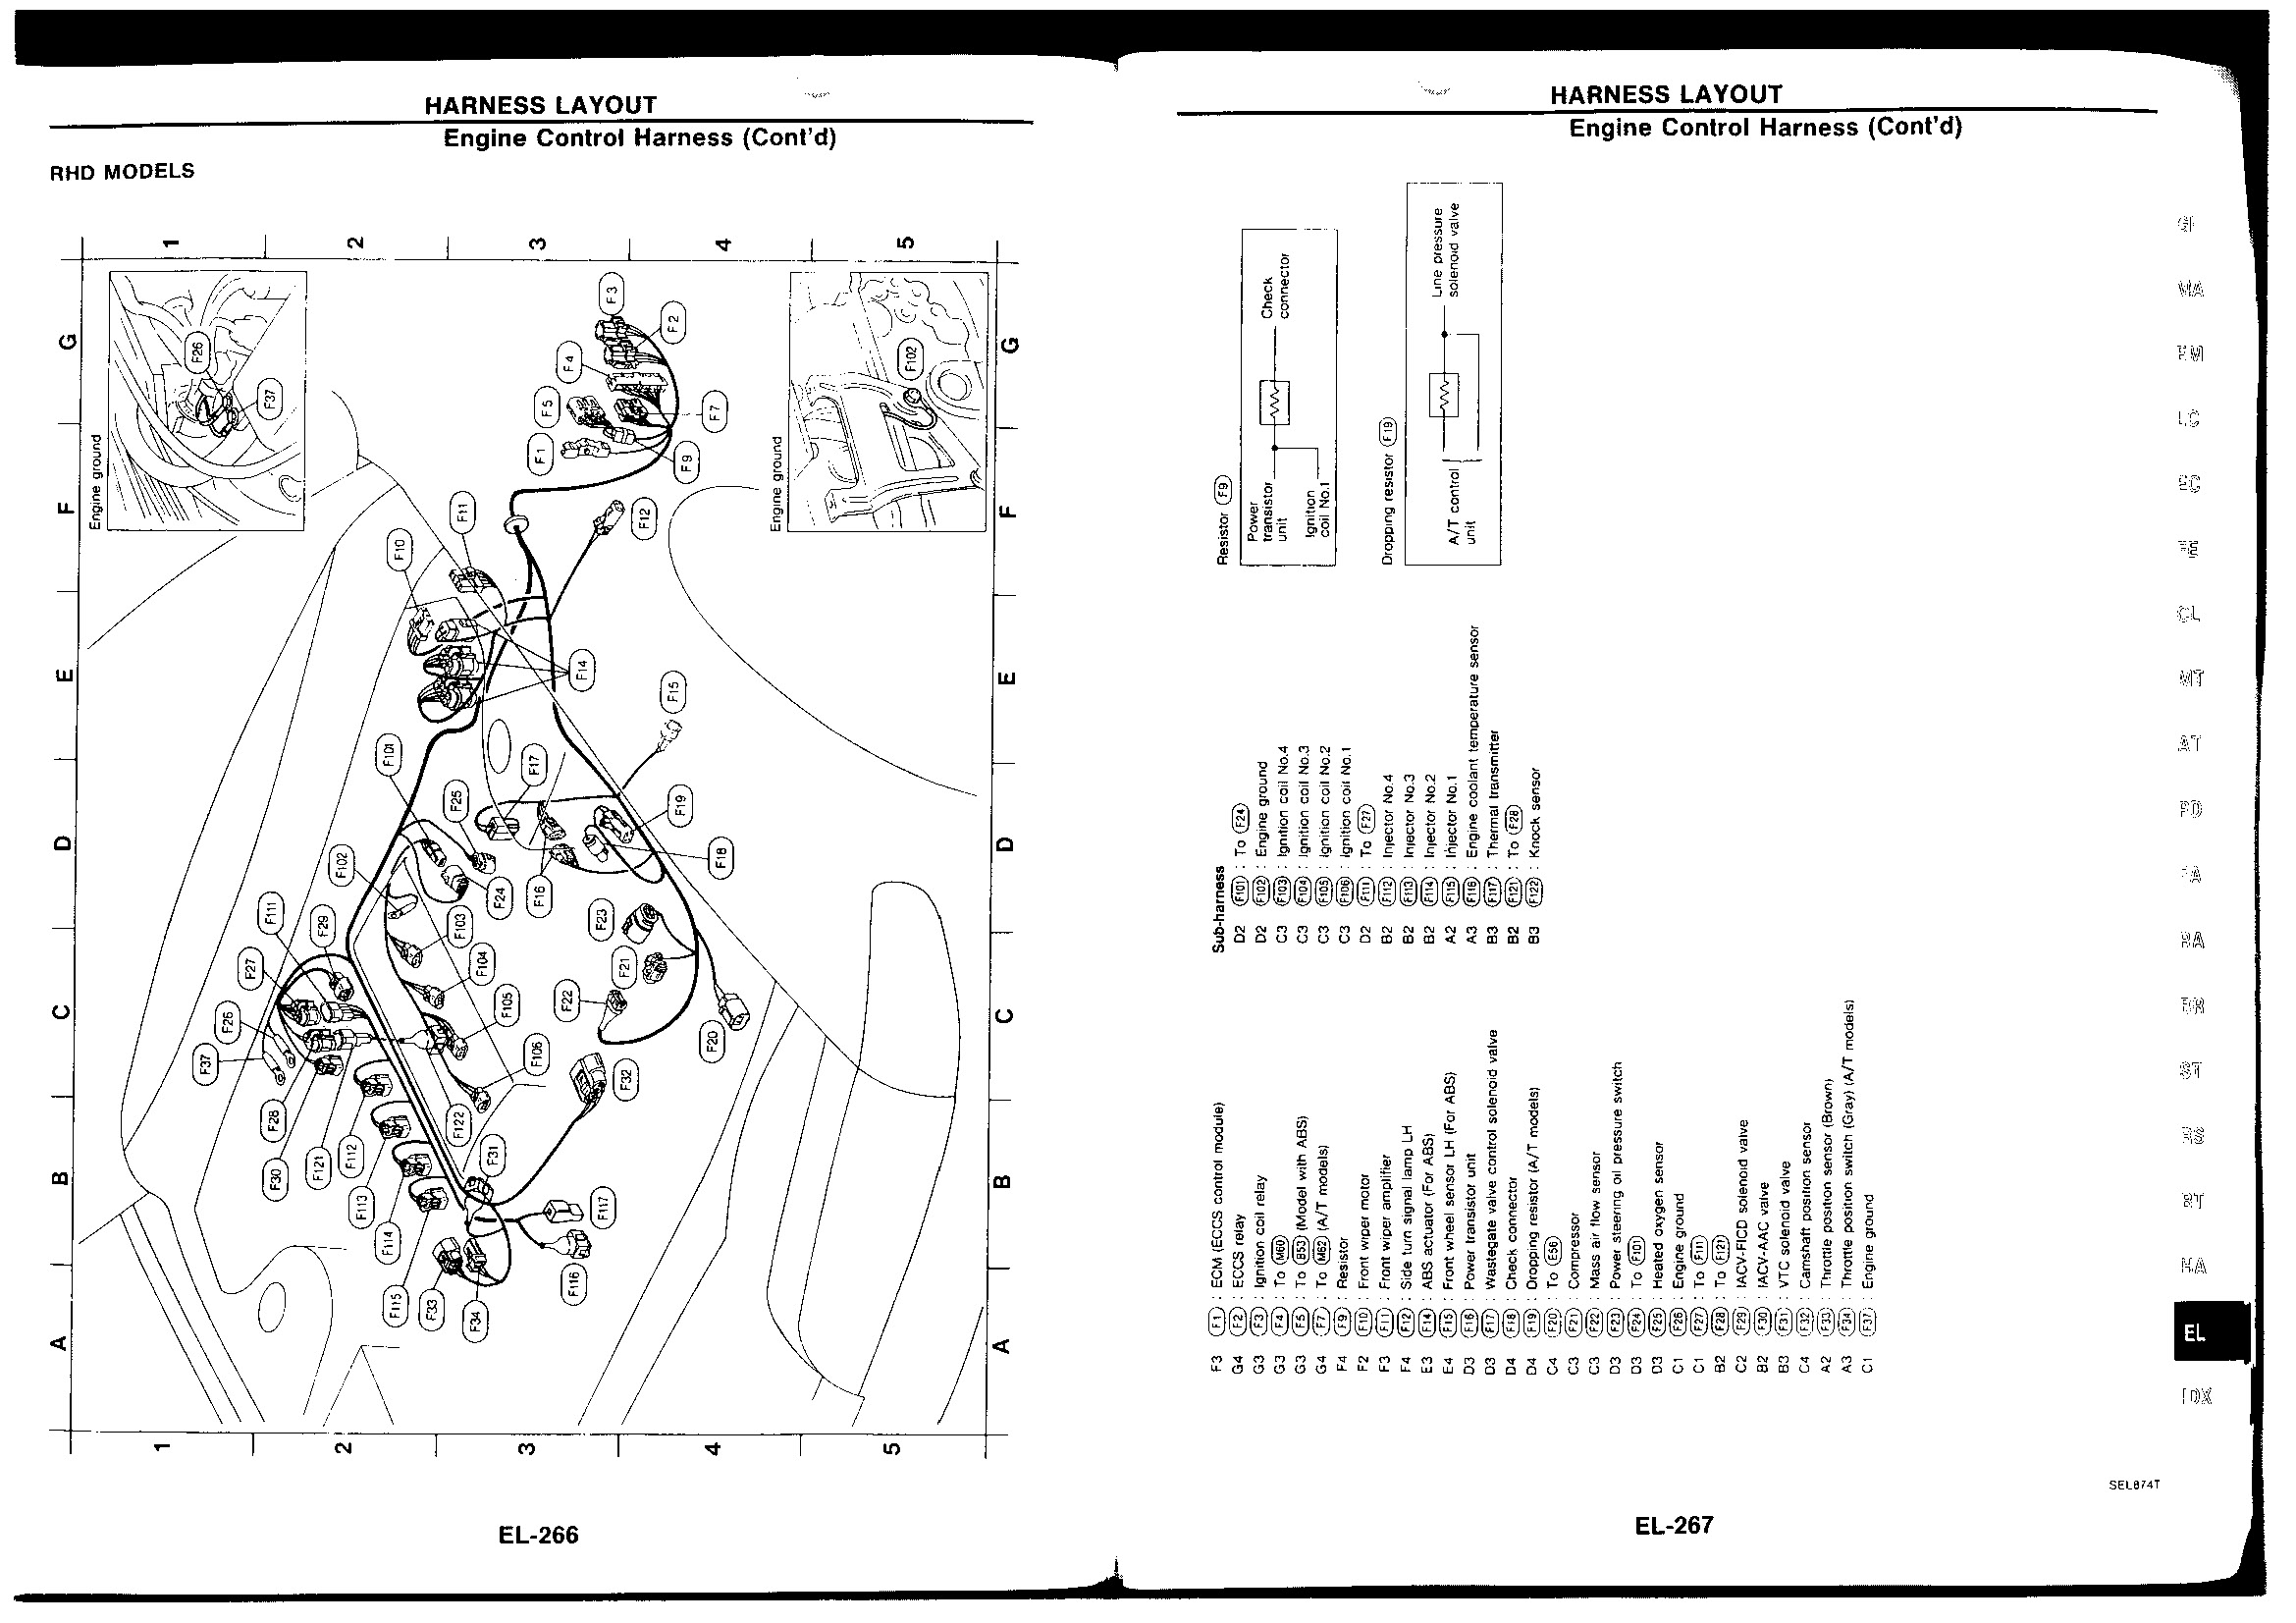 small resolution of camstat wiring diagram for oil gandul 45 77 79 119 s14 zenki sr20det english text page 802 w